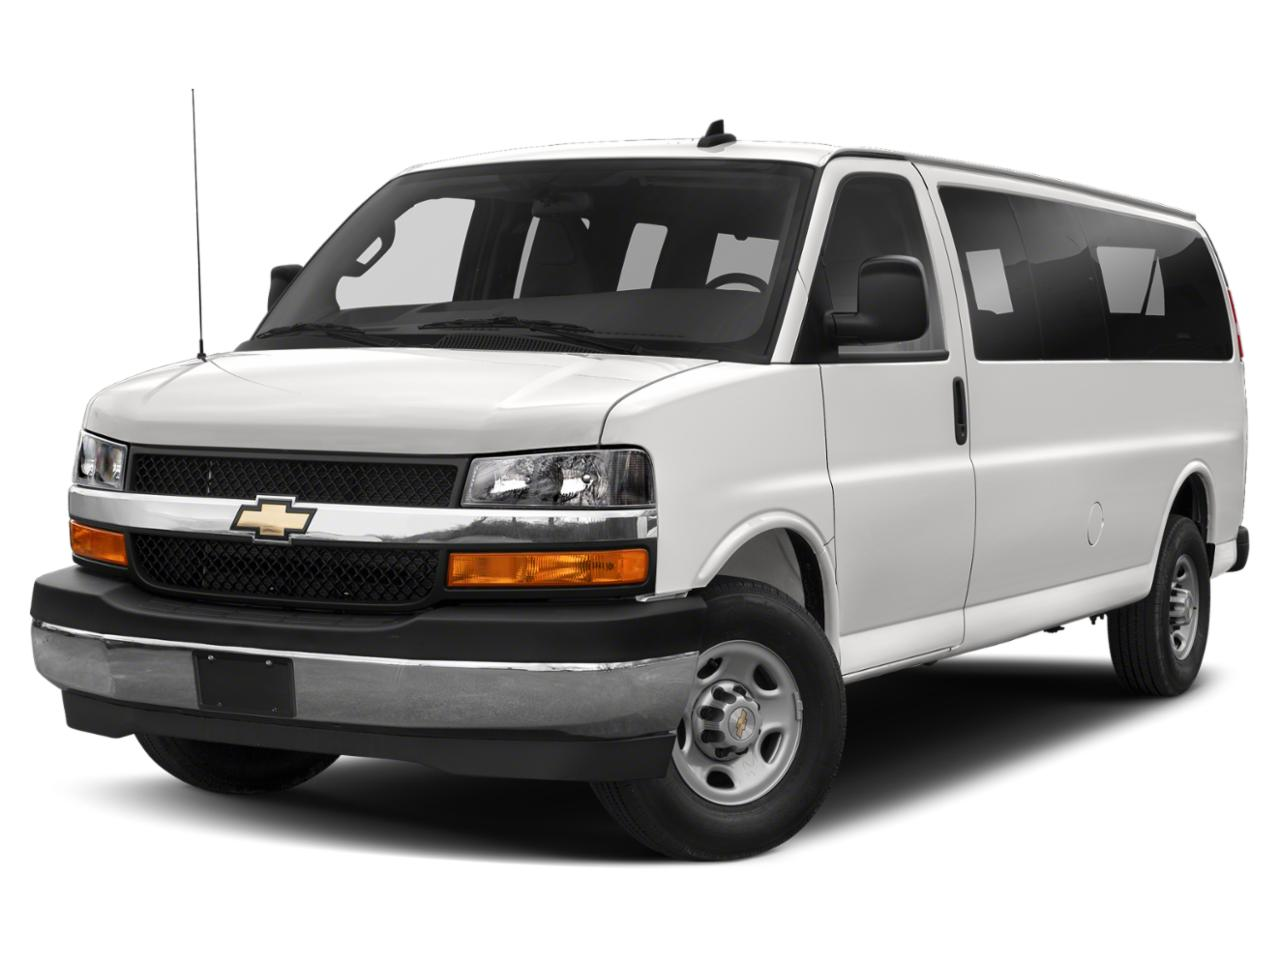 2019 Chevrolet Express Passenger Vehicle Photo in Vincennes, IN 47591